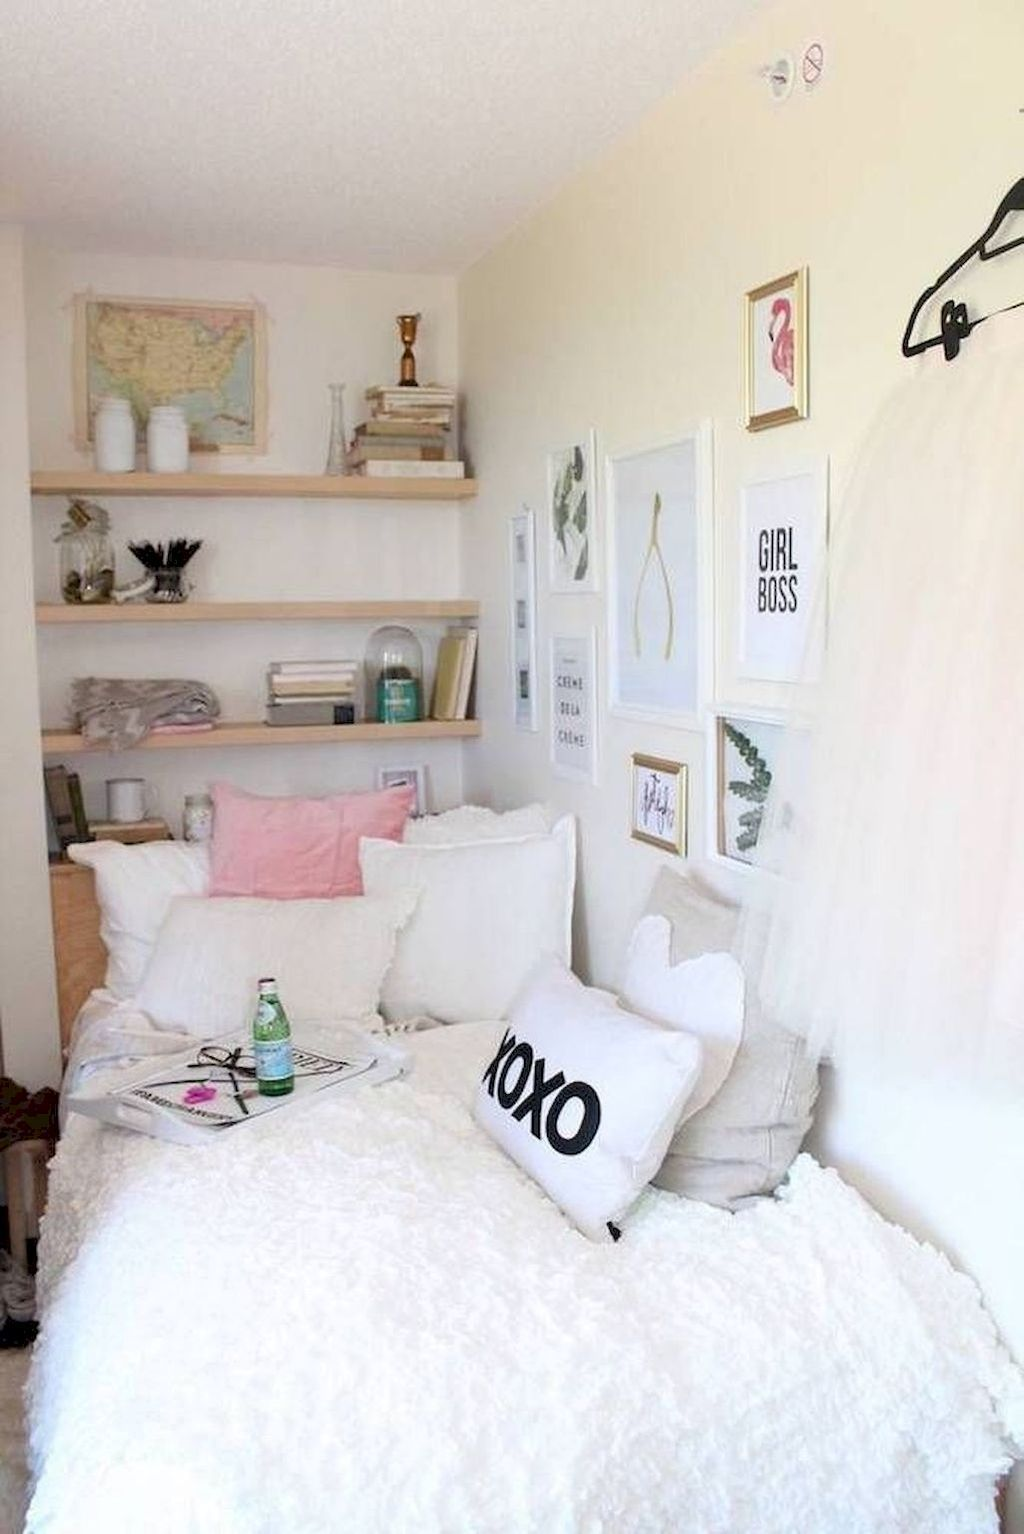 80 Genius Dorm Room Decorating Ideas On A Budget Dorm Room Decor Cute Dorm Rooms Small Bedroom Decor